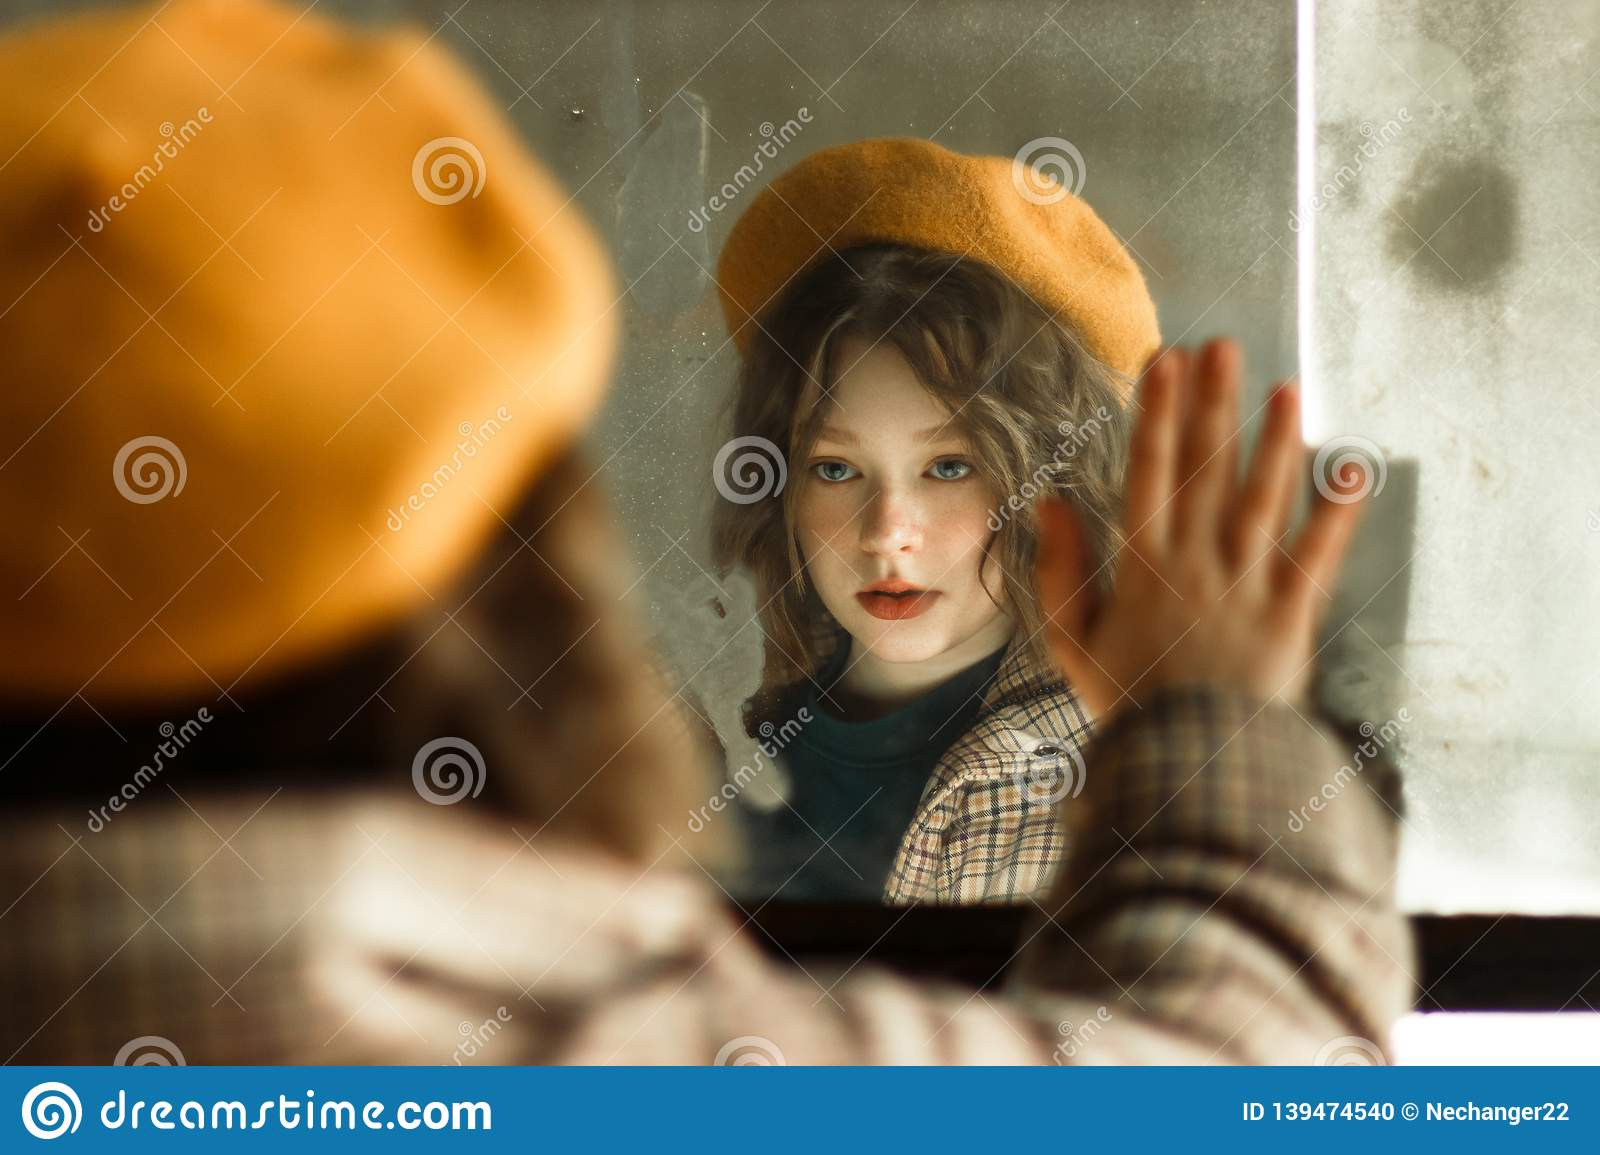 Beautiful young girl in beige hat looking at herself in the mirror